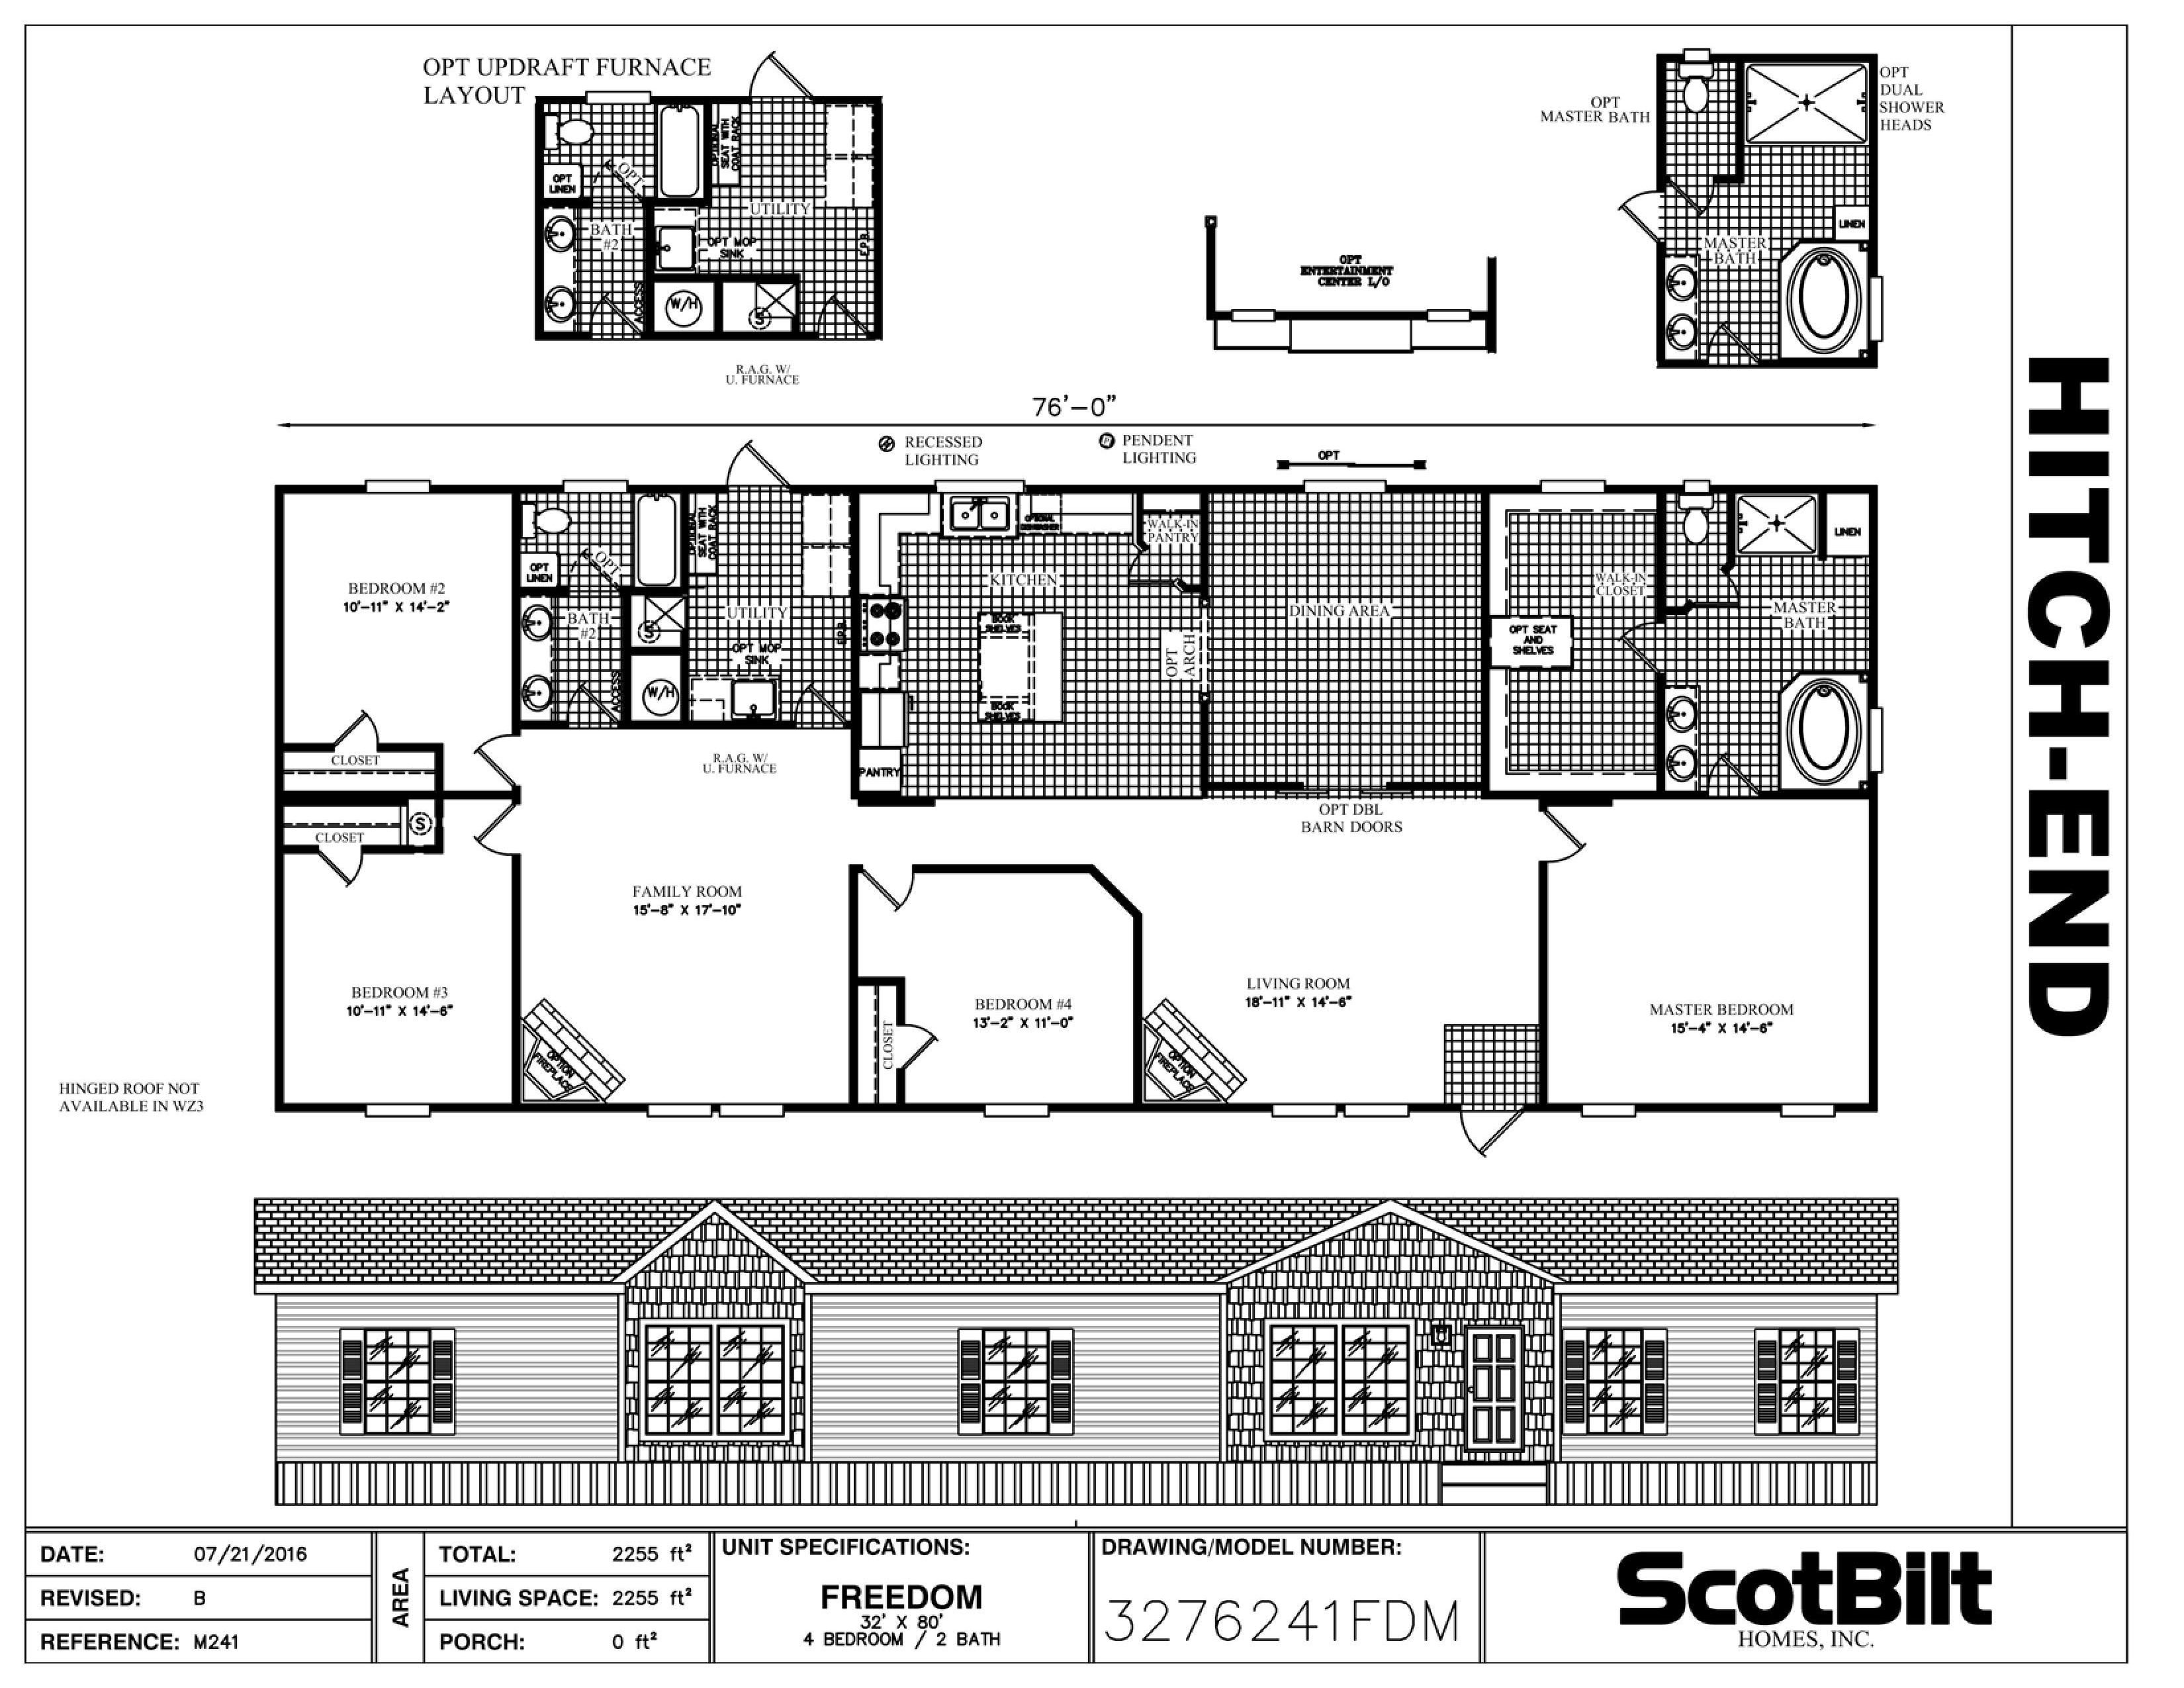 The Maverick Floorplan